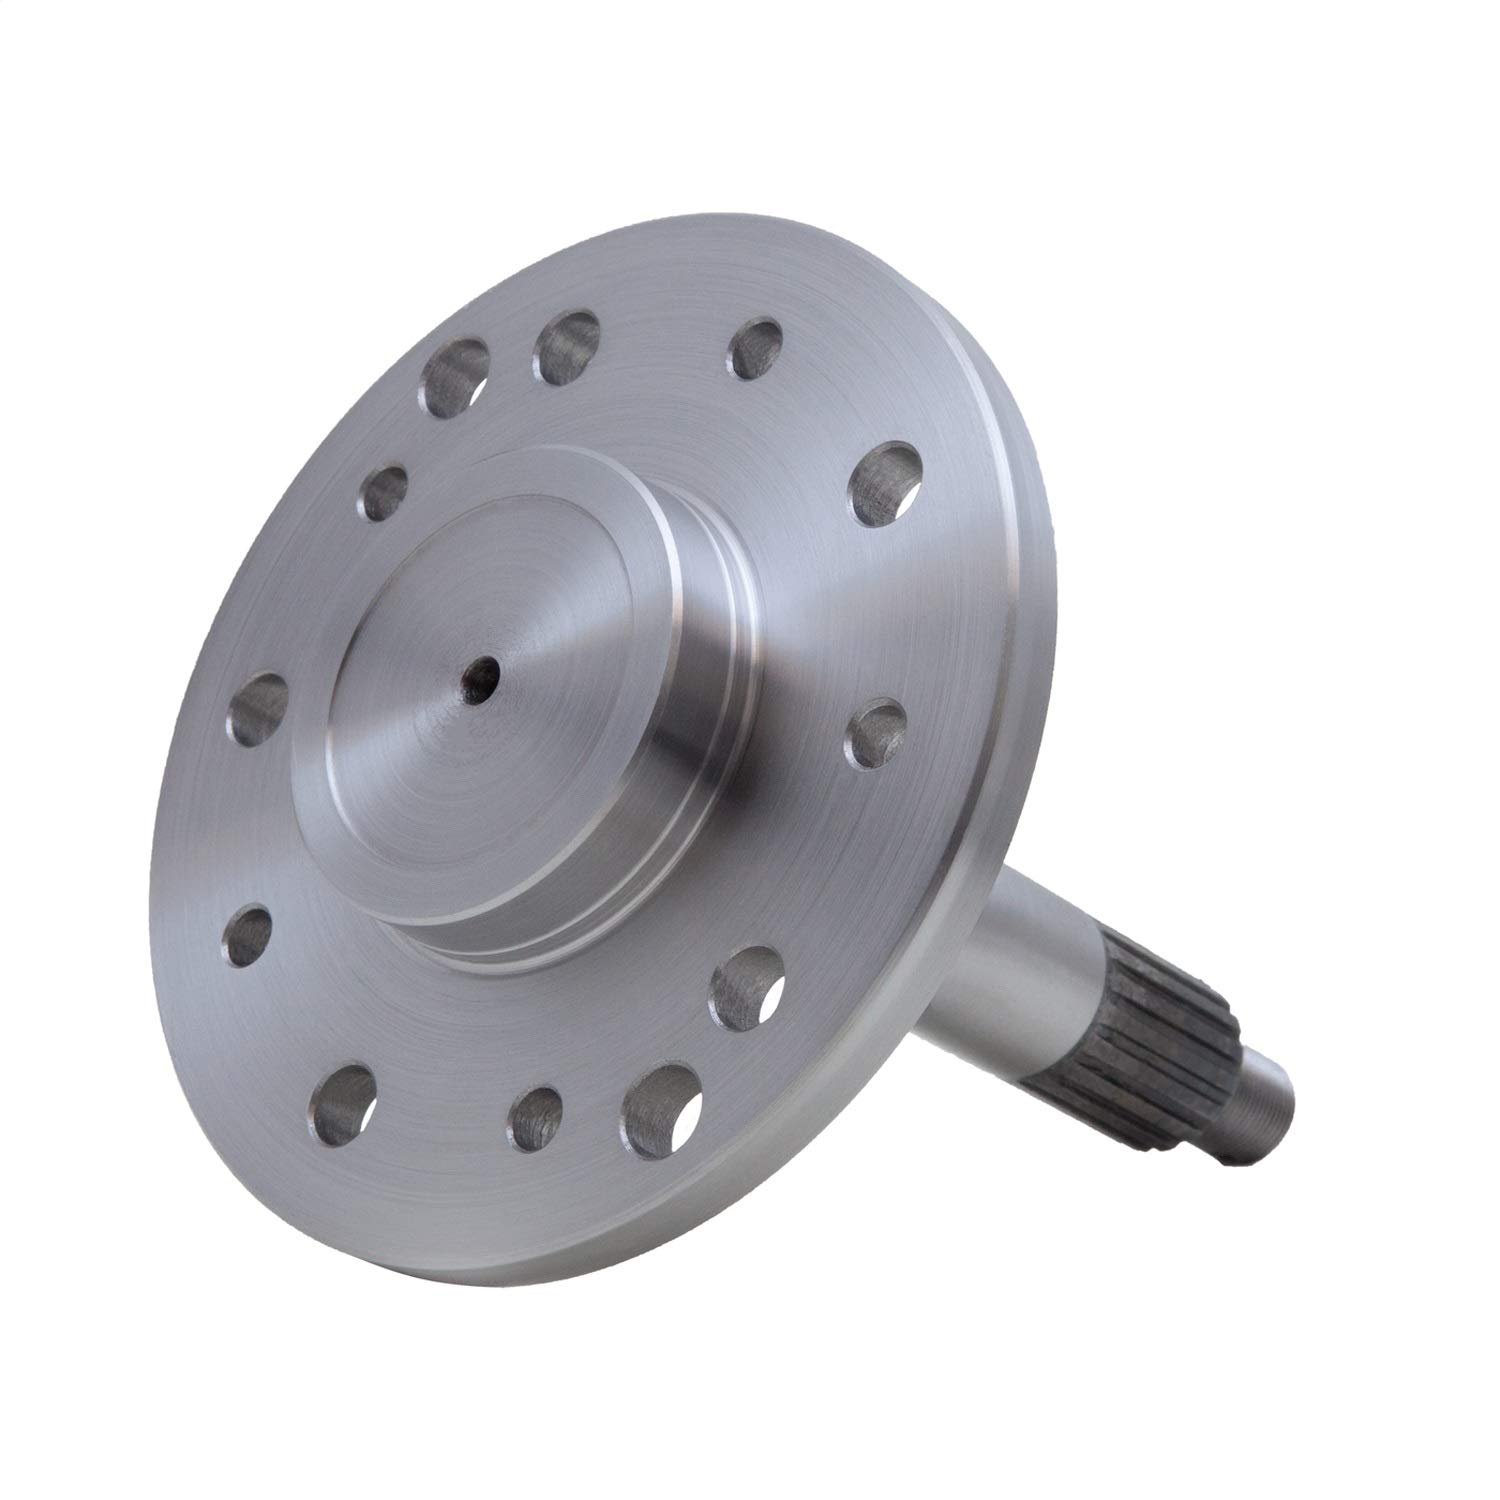 Yukon Gear & Axle (YA G3872476) Outer Rear Wheel Spindle for Chevrolet Corvette Differential